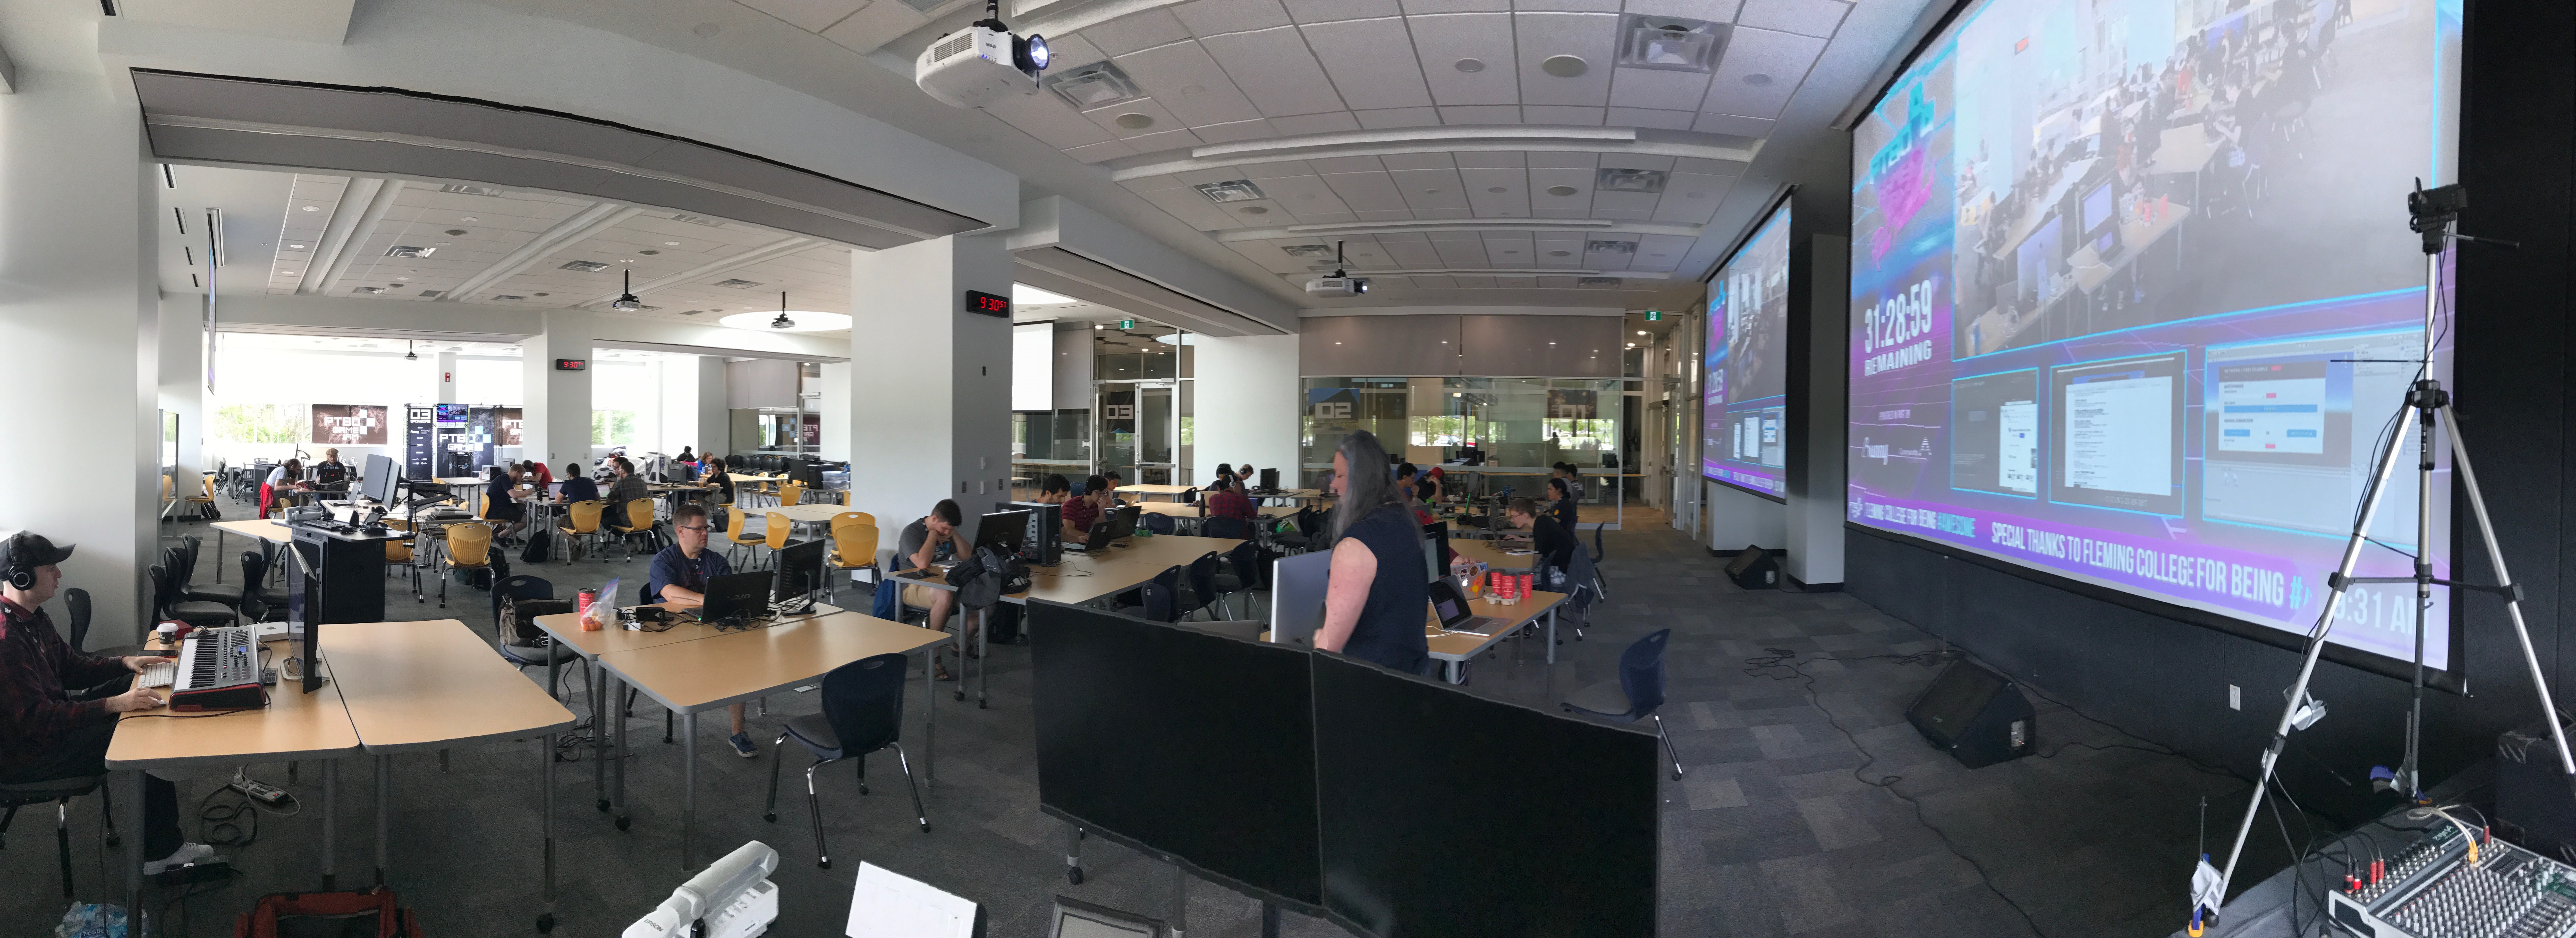 Picture of jammers starting to arrive at the start of PTBO Game Jam 03, staring the game development process.